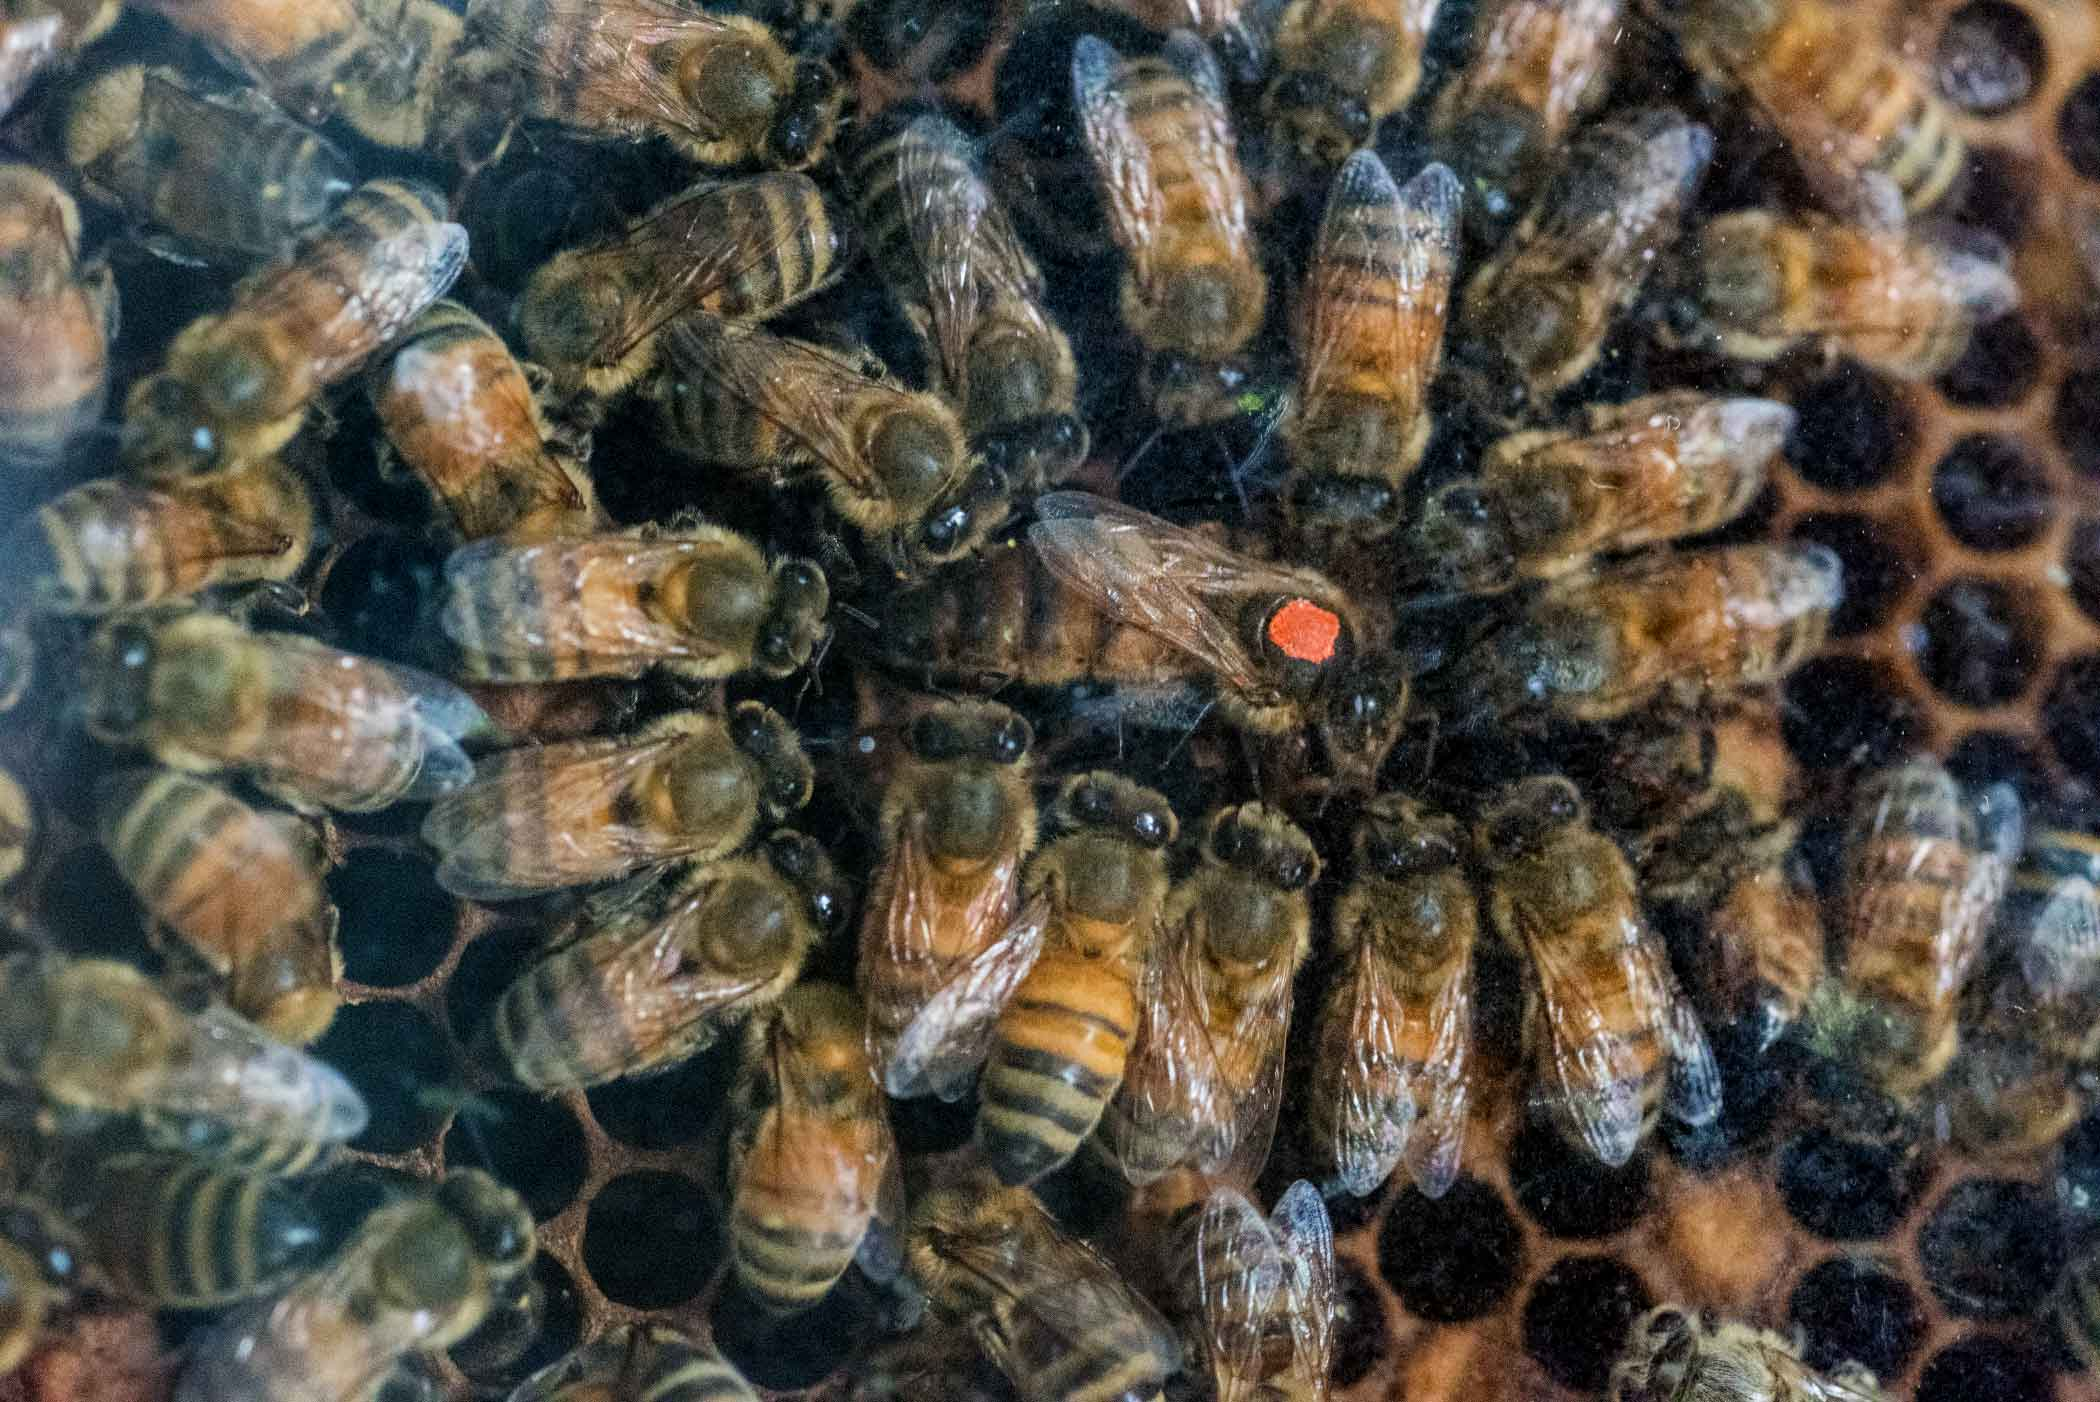 A queen bee in the hive.